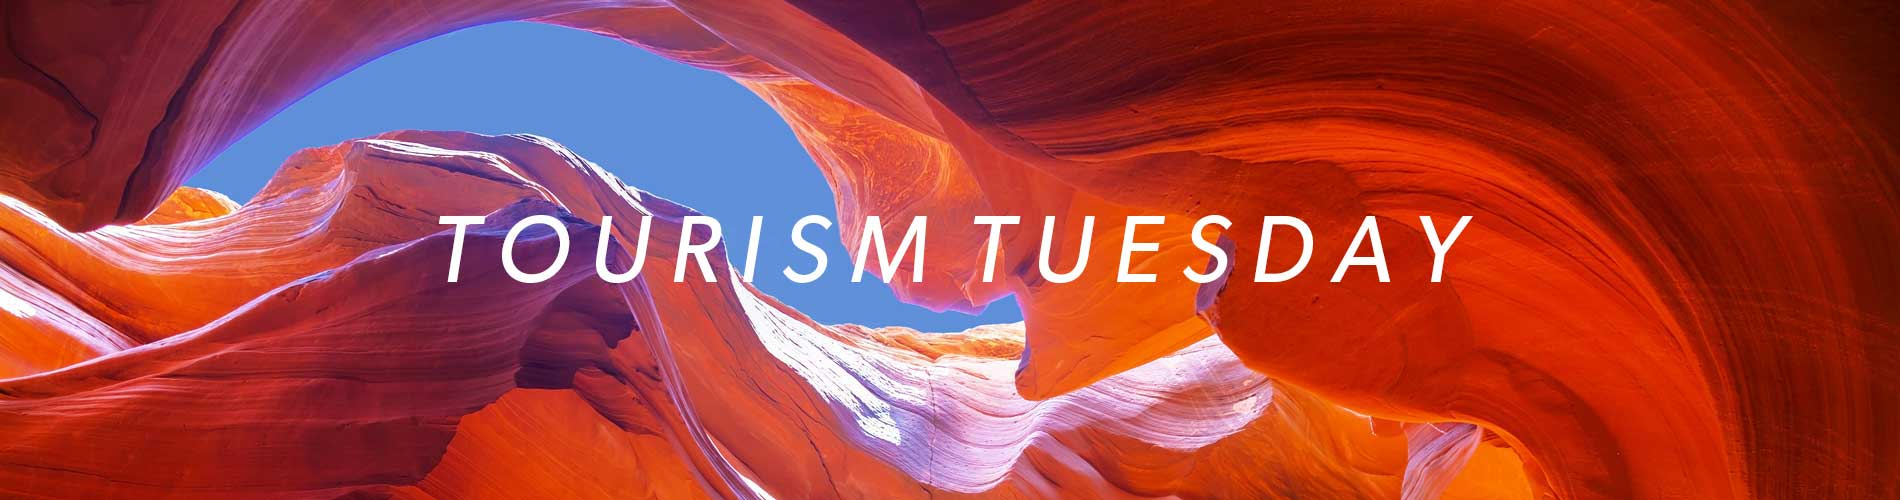 TourismTuesday_6